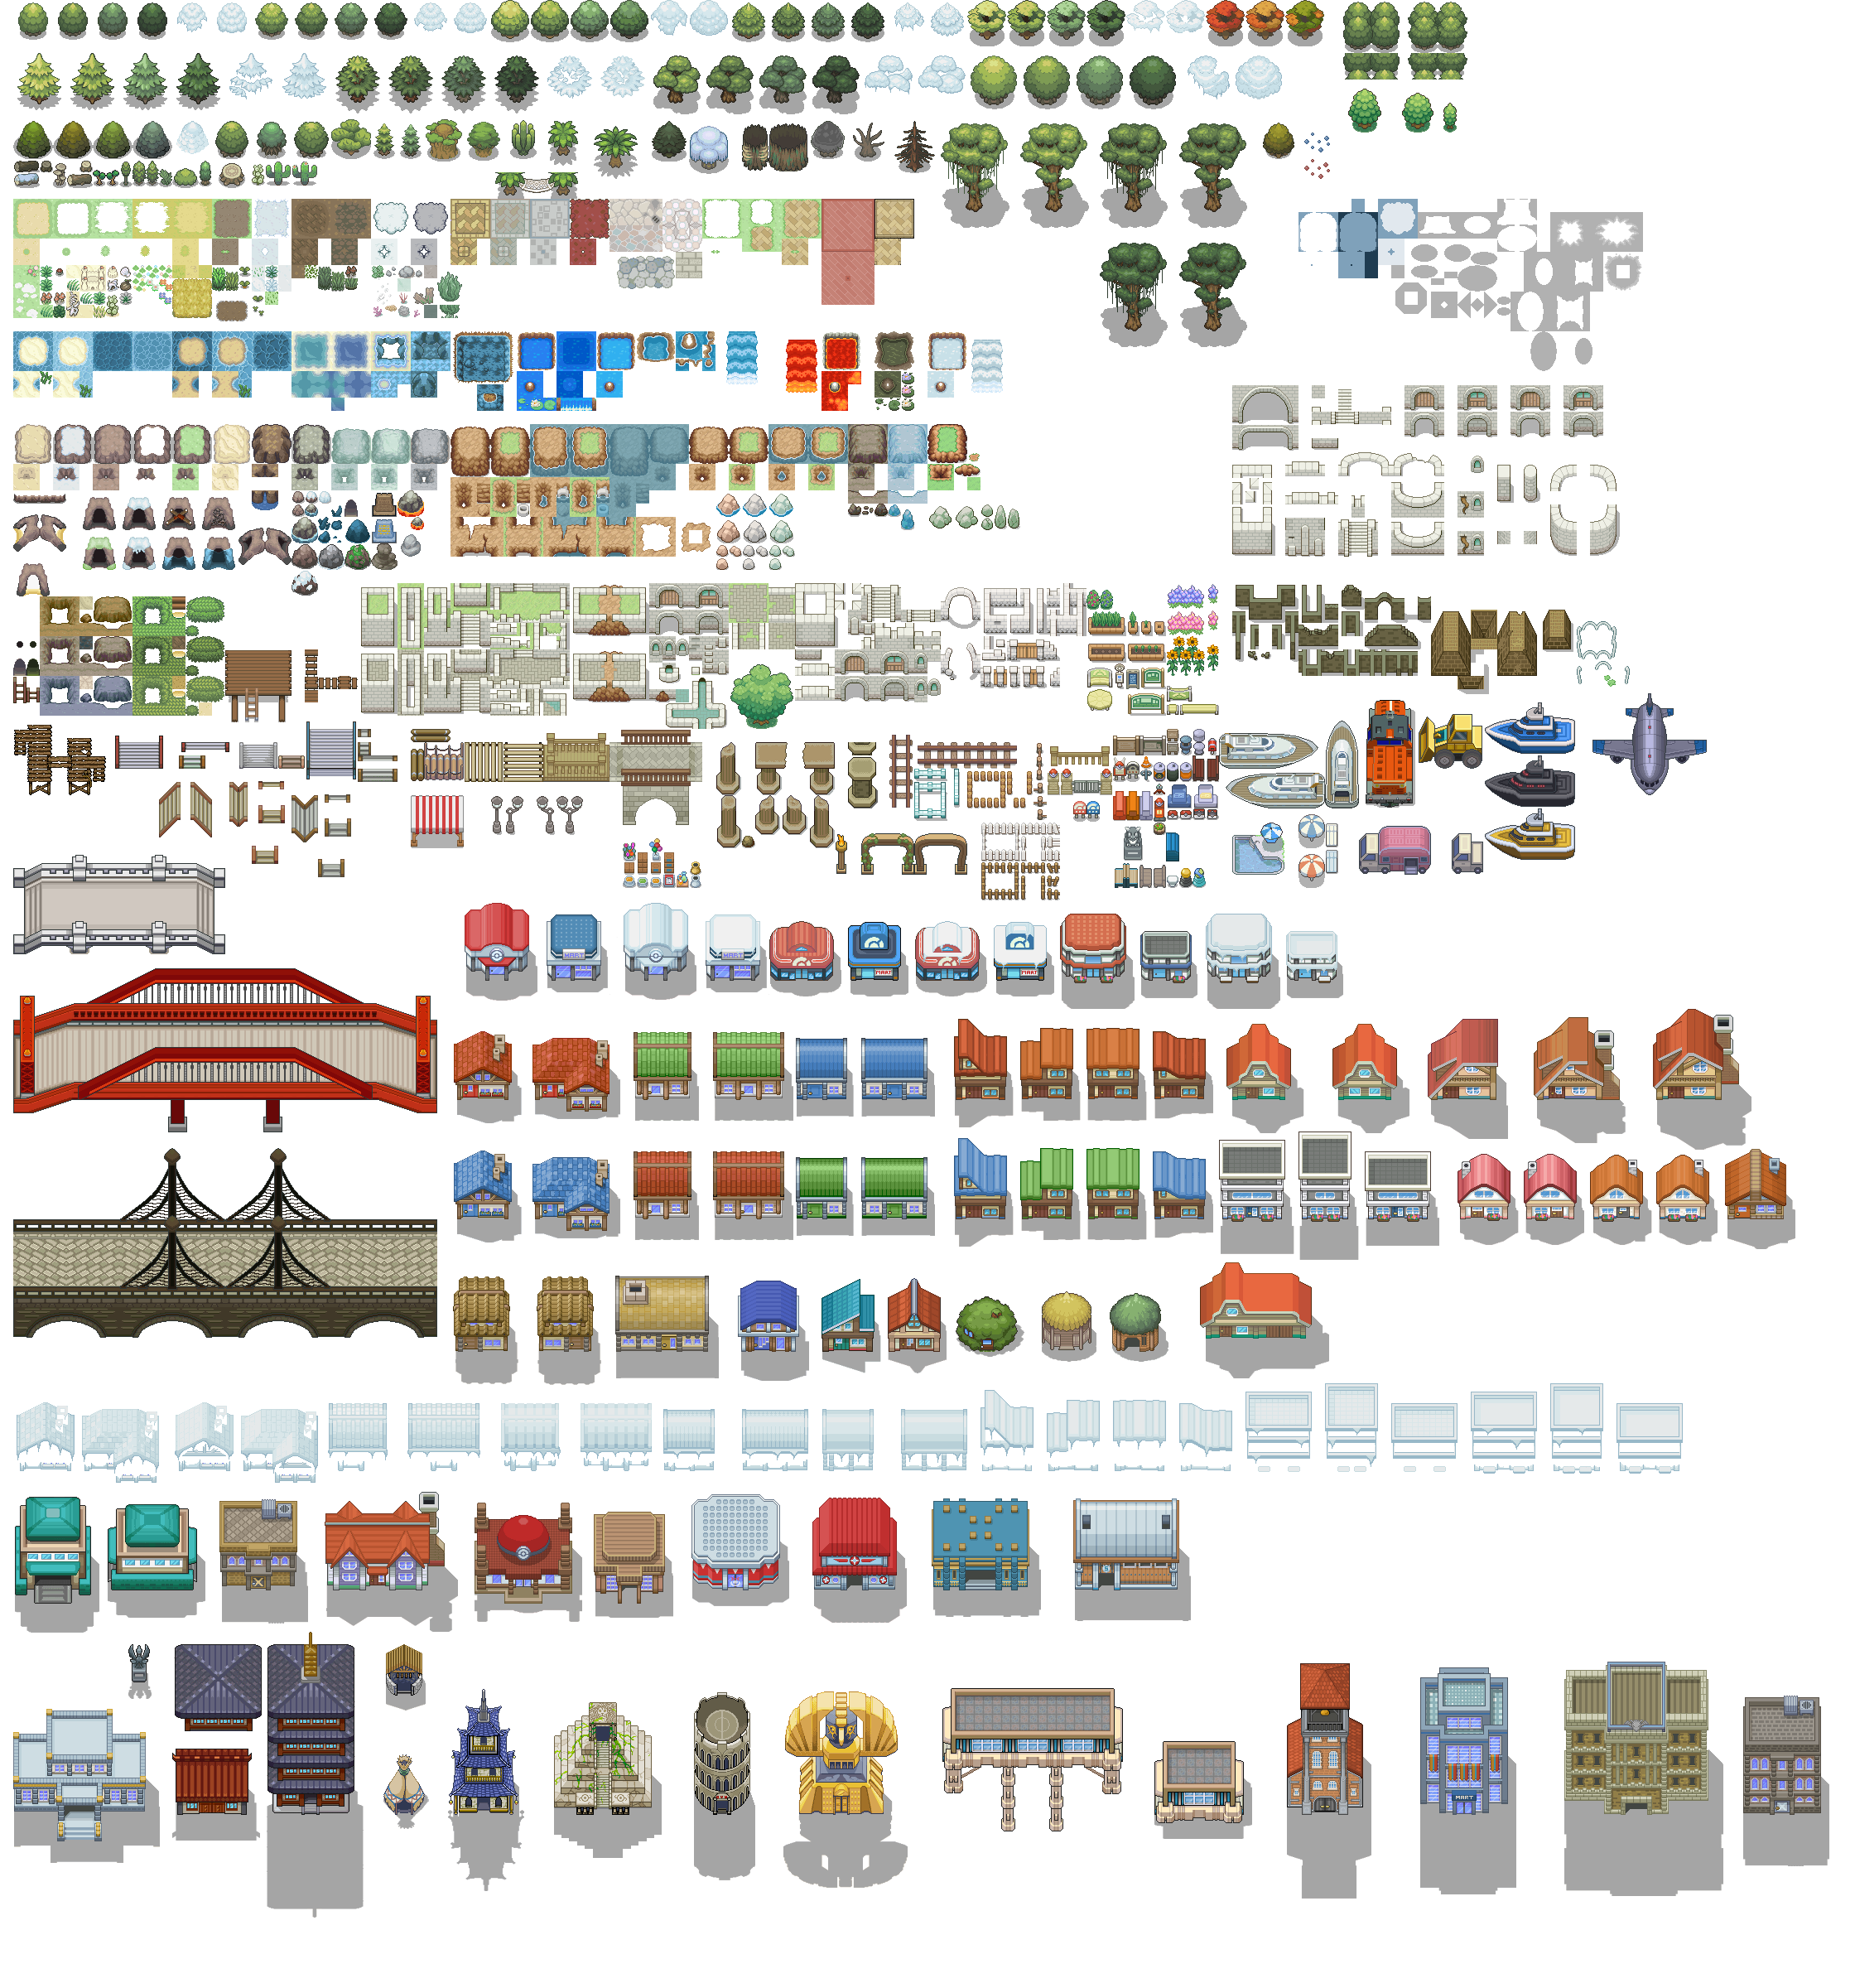 o trouver des tilesets complets rpg maker forum pokemon trash. Black Bedroom Furniture Sets. Home Design Ideas